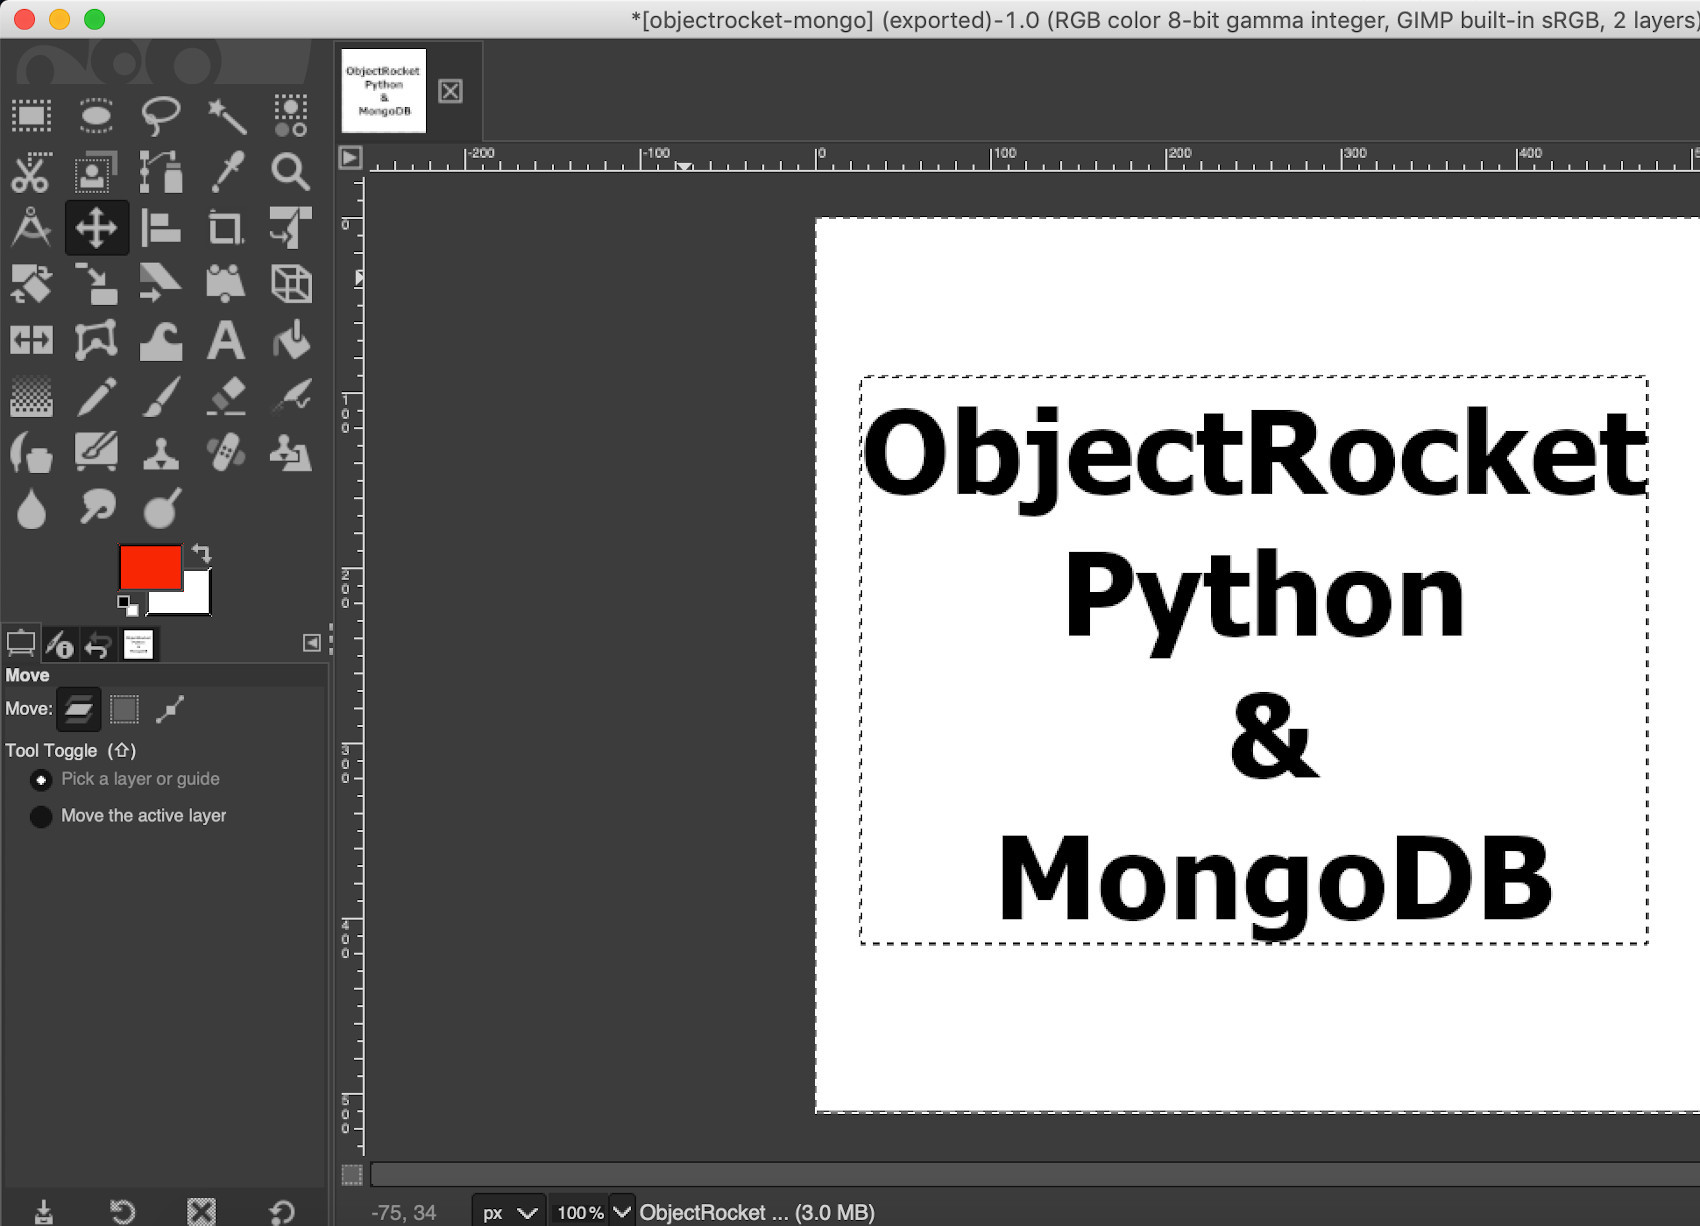 Screenshot of Python PyMongo MongoDB PyTesseract image in GIMP